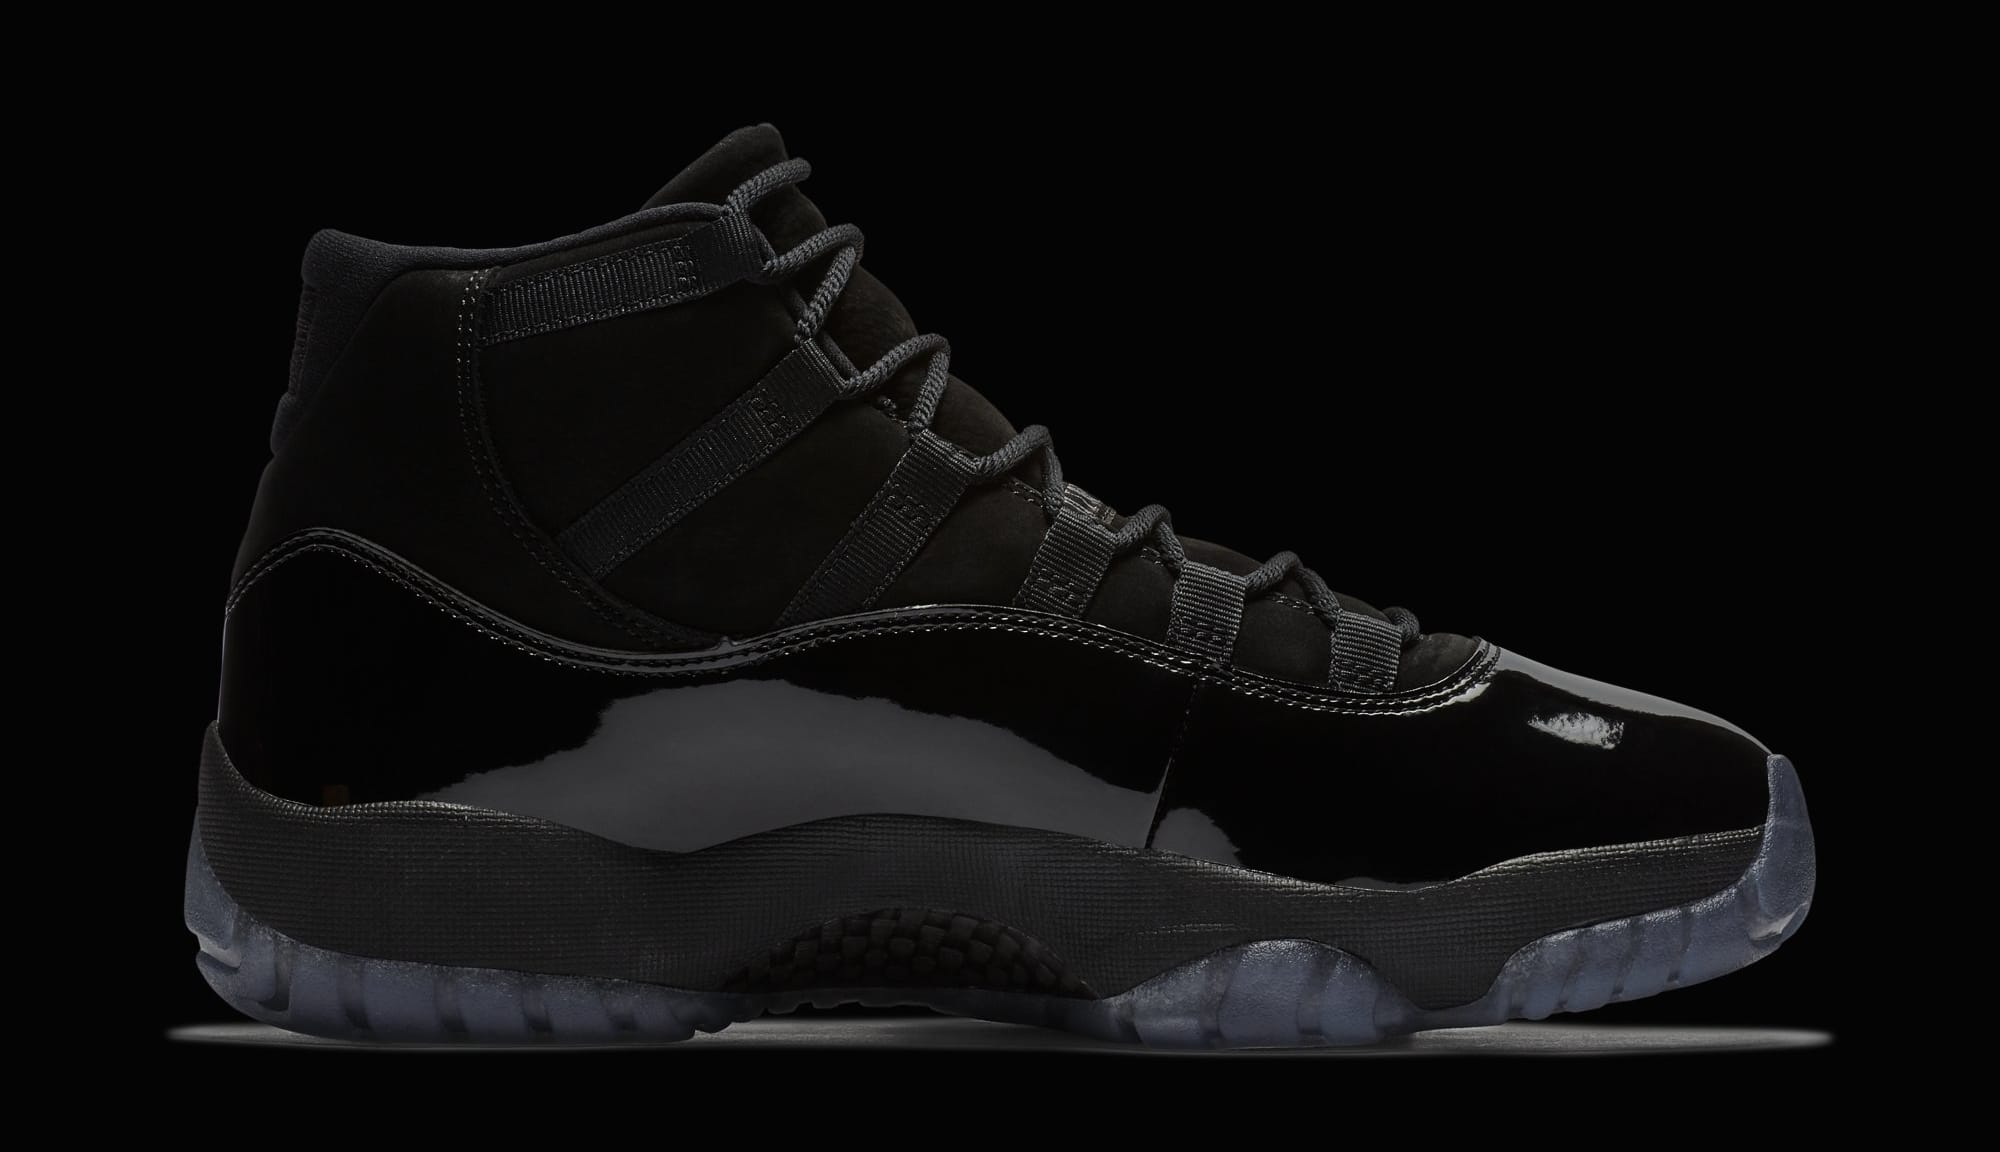 Air Jordan 11 Retro \'Cap and Gown\' SNKRS Early Access   Sole Collector